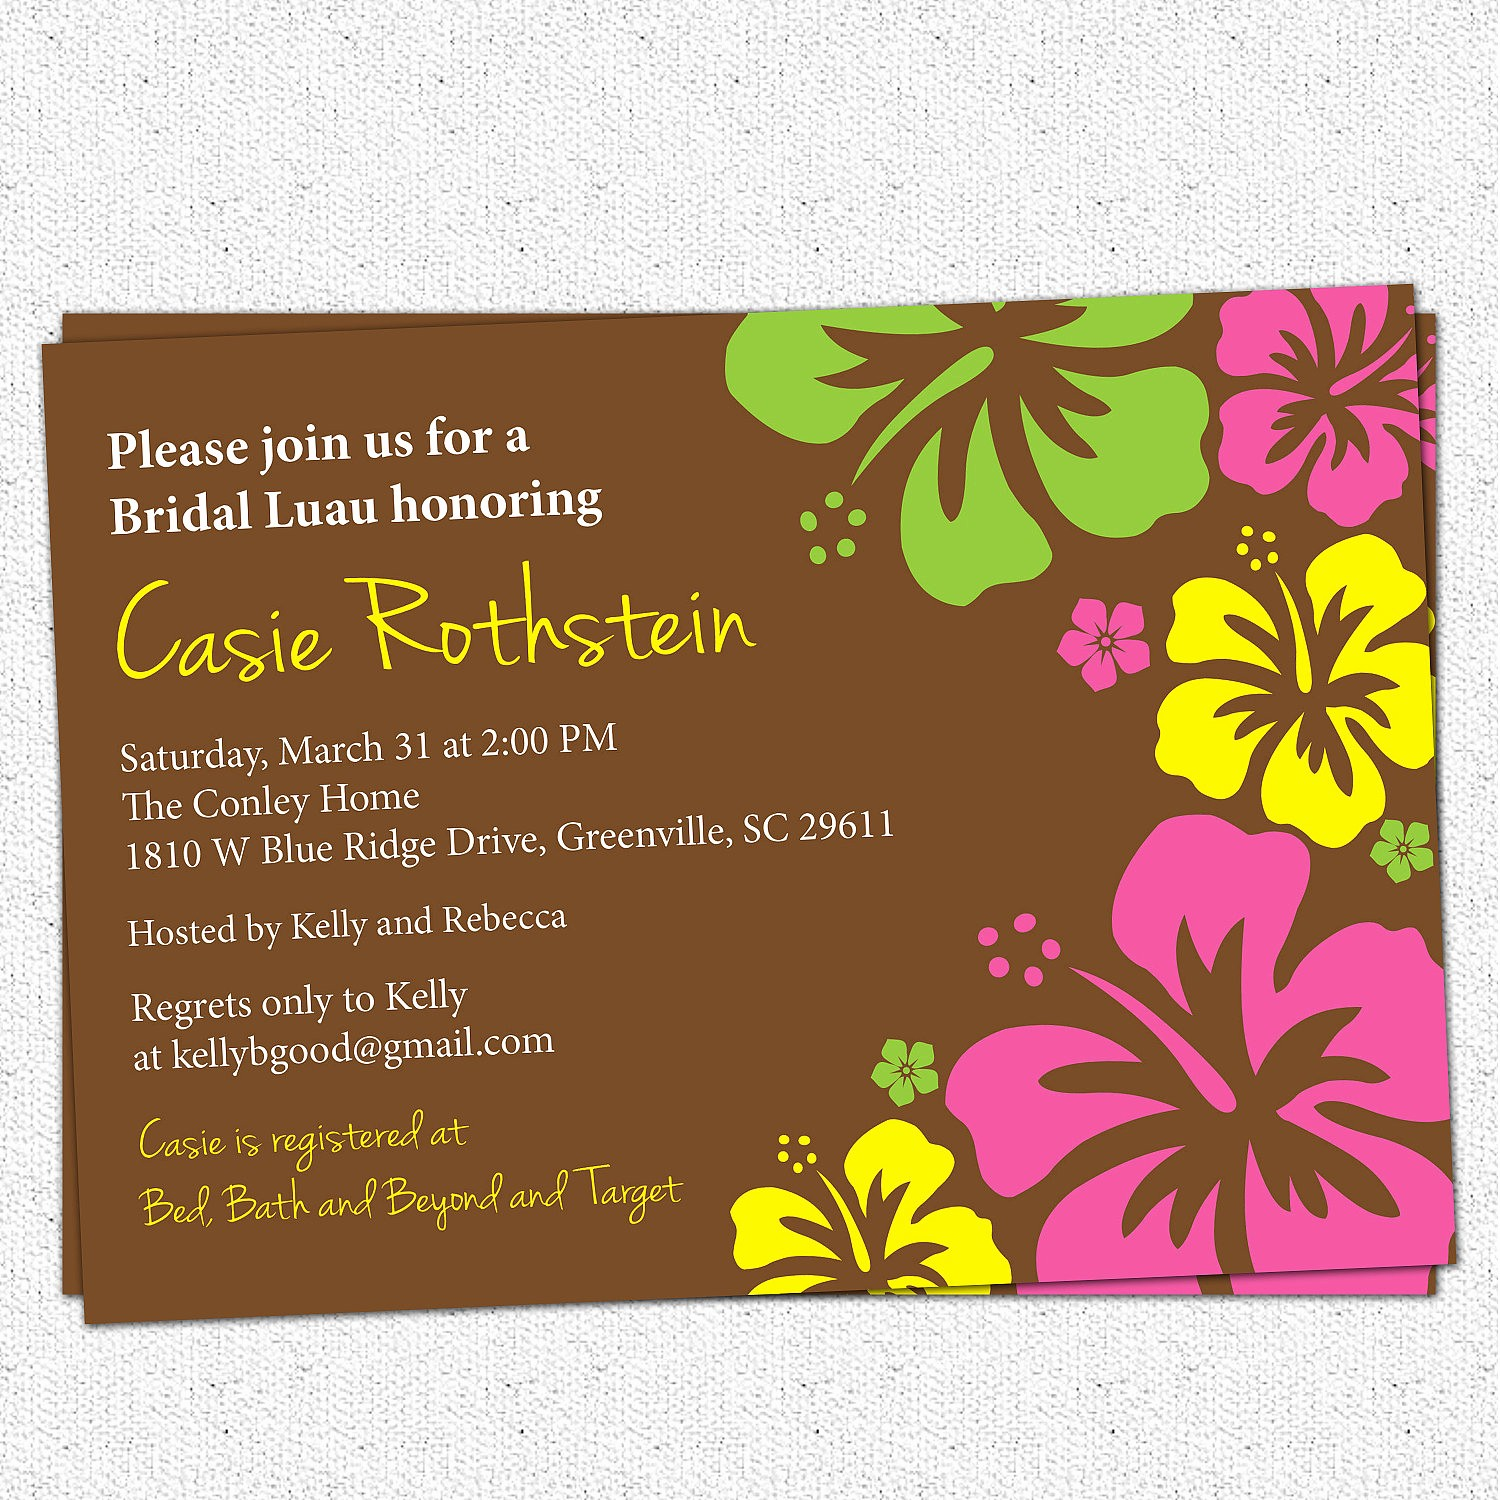 Luau Party Invitations Templates Free Unique Others Custom Luau Invitations for Your Tropical Getaway